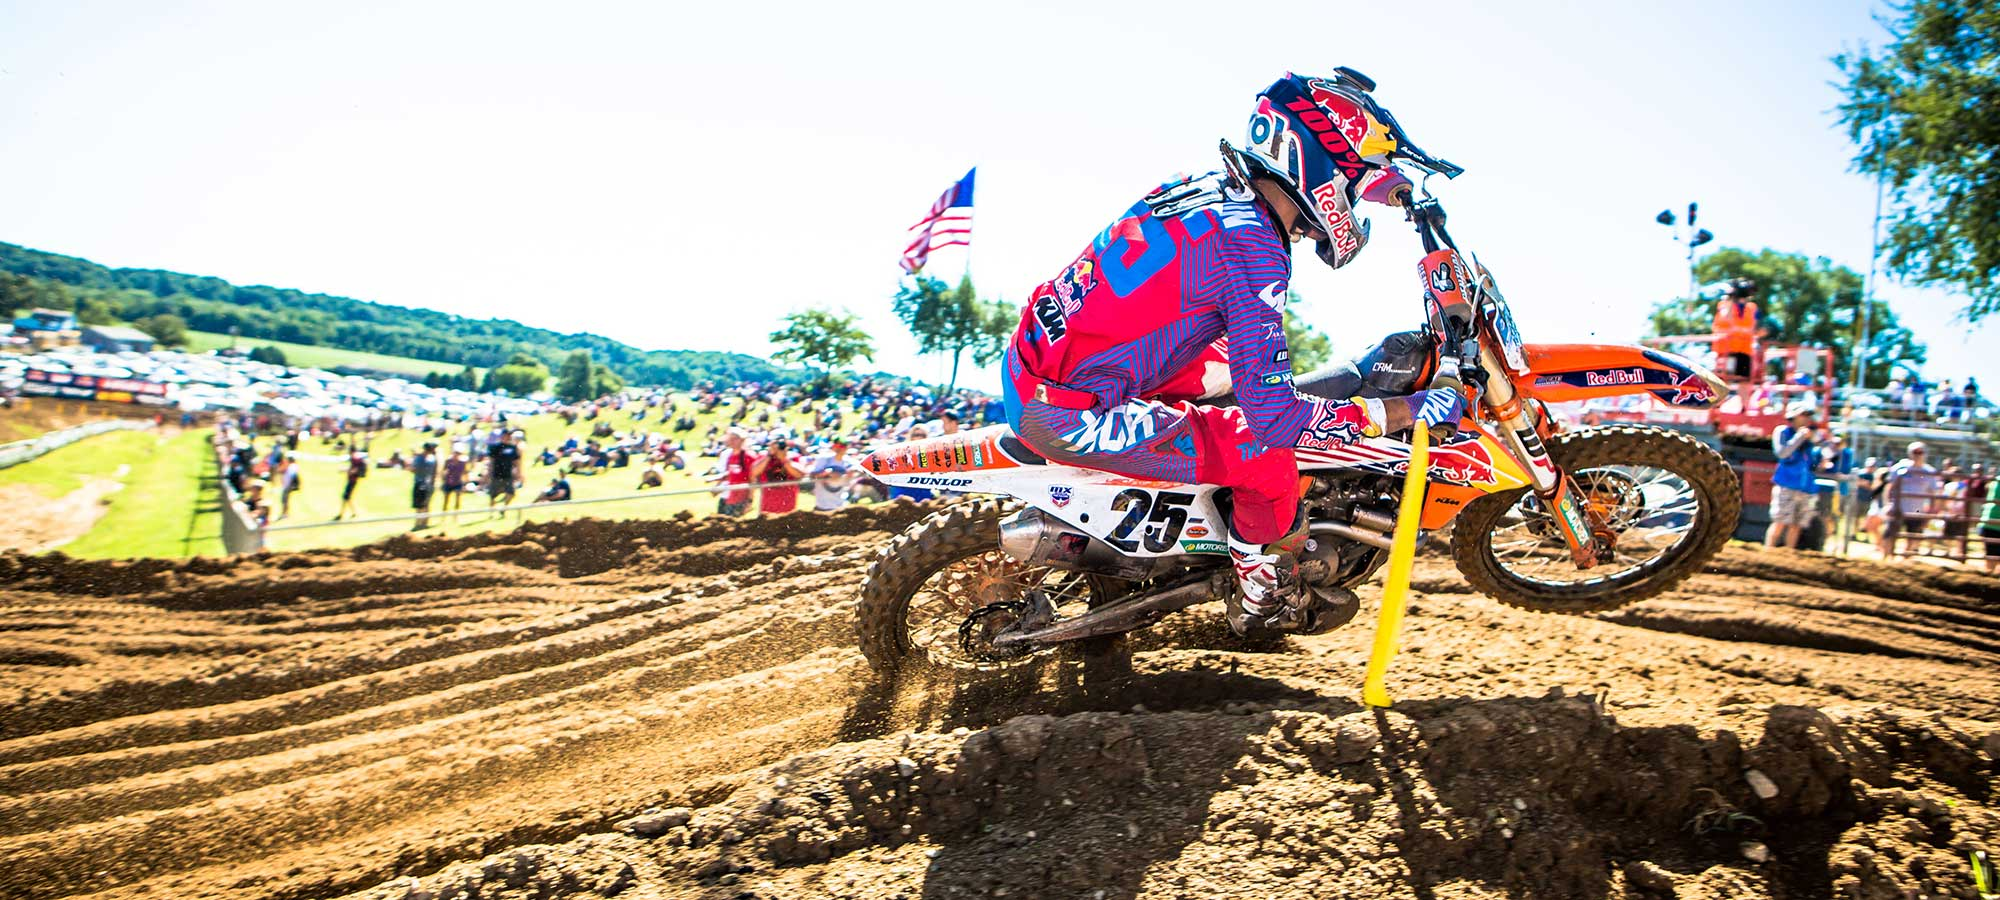 Red Bull KTM Factory Racing's Marvin Musquin